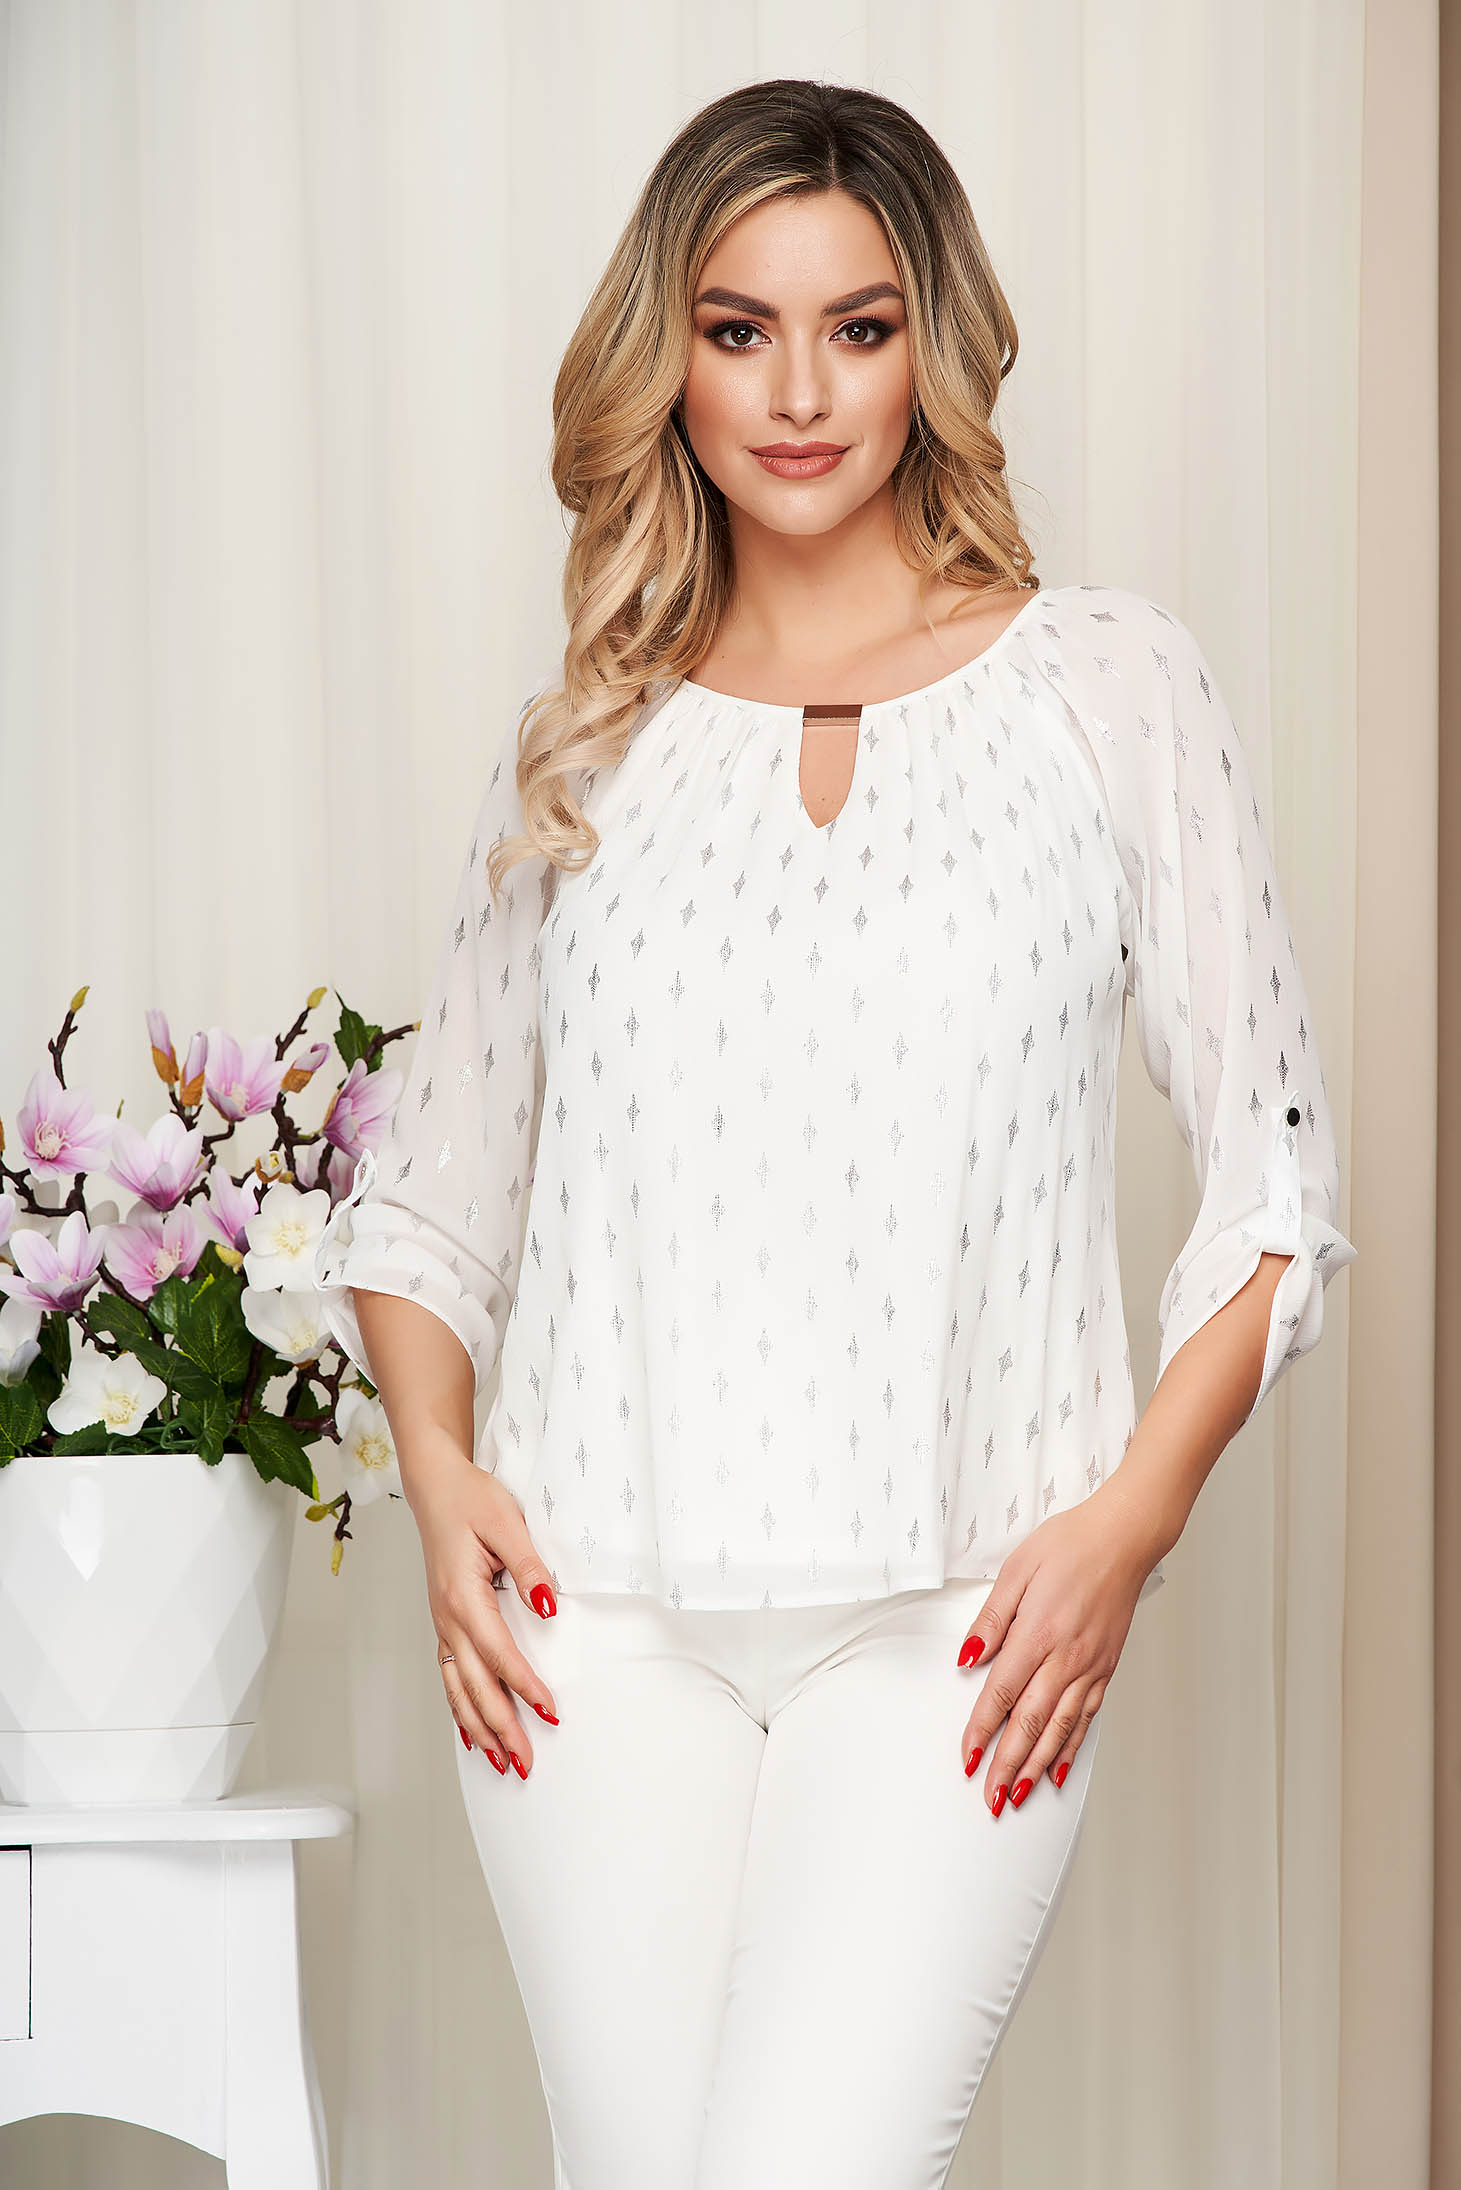 Ivory women`s blouse from veil fabric elegant with metalic accessory with glitter details